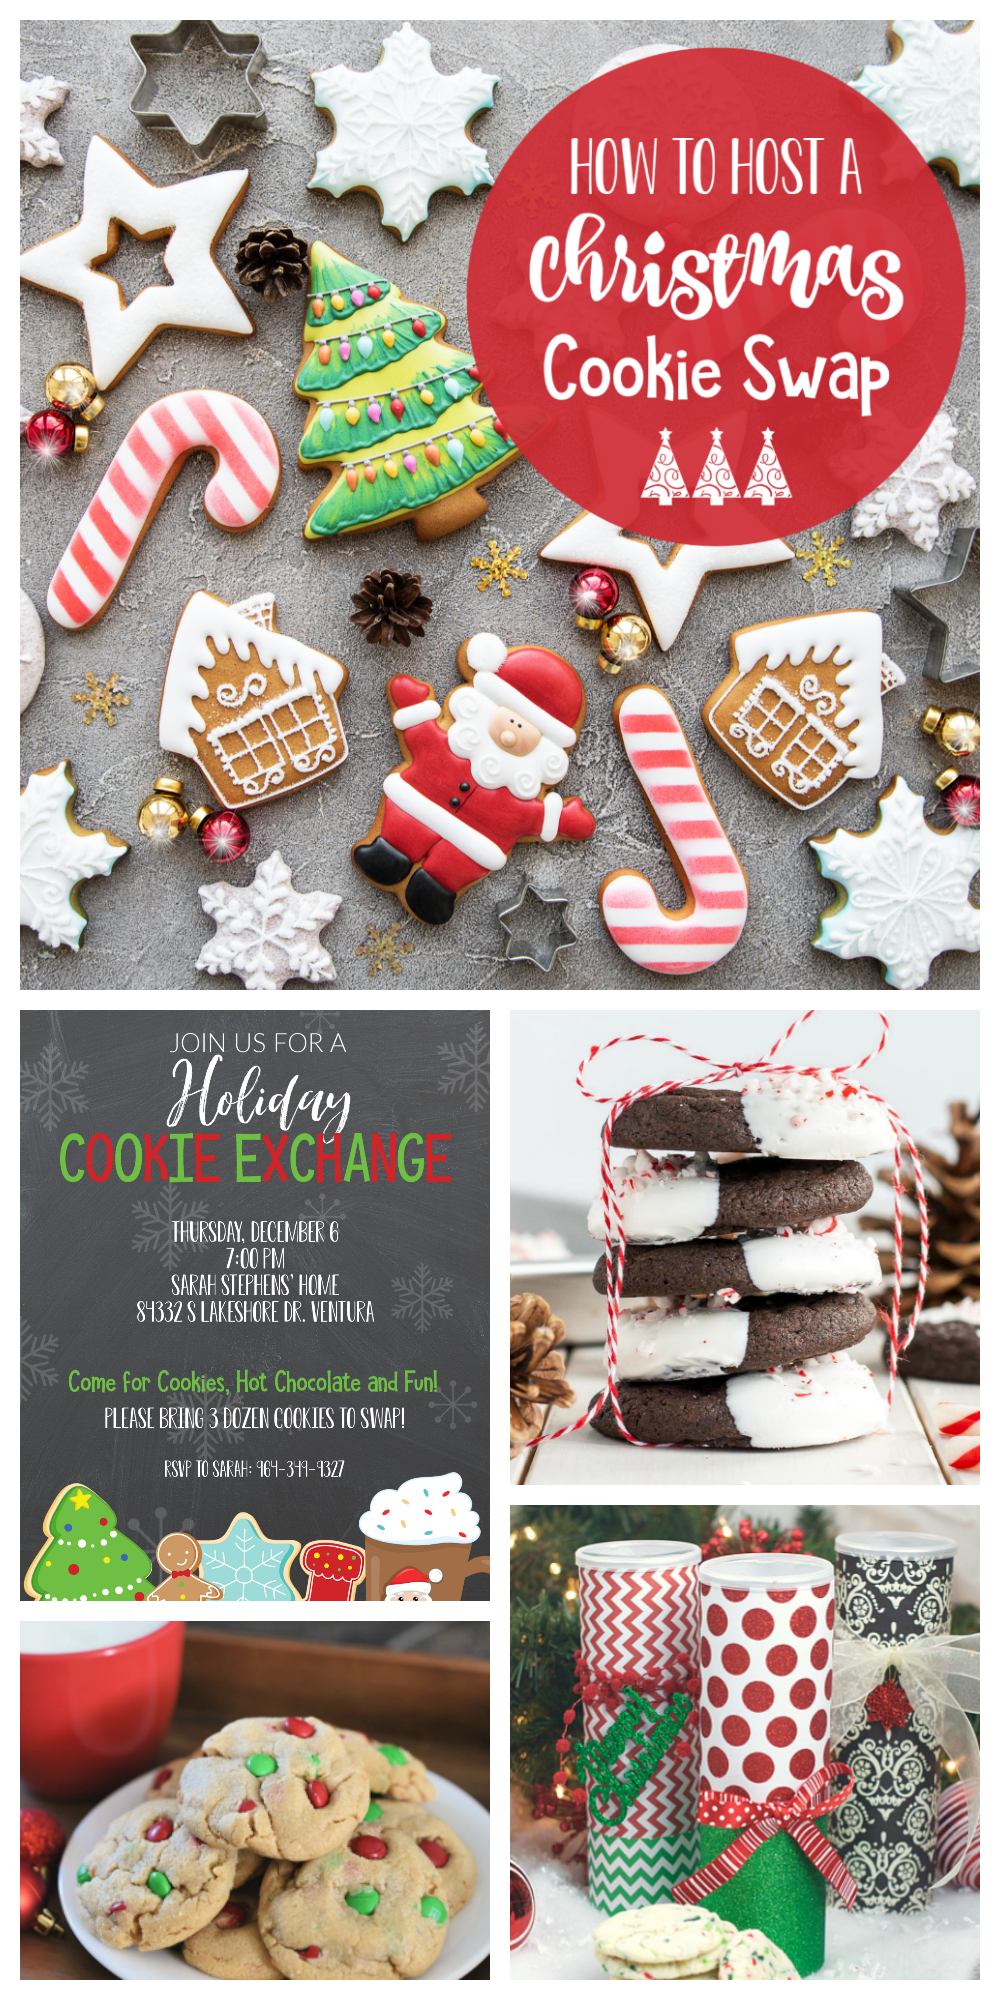 Christmas Cookie Exchange Party Ideas-How to host a fabulous cookie swap this holiday season. Cookie exchange recipes, activity ideas, cookie exchange invitations and everything else you need! #christmas #christmascookies #christmascookieparty #cookieexchange #christmasparty